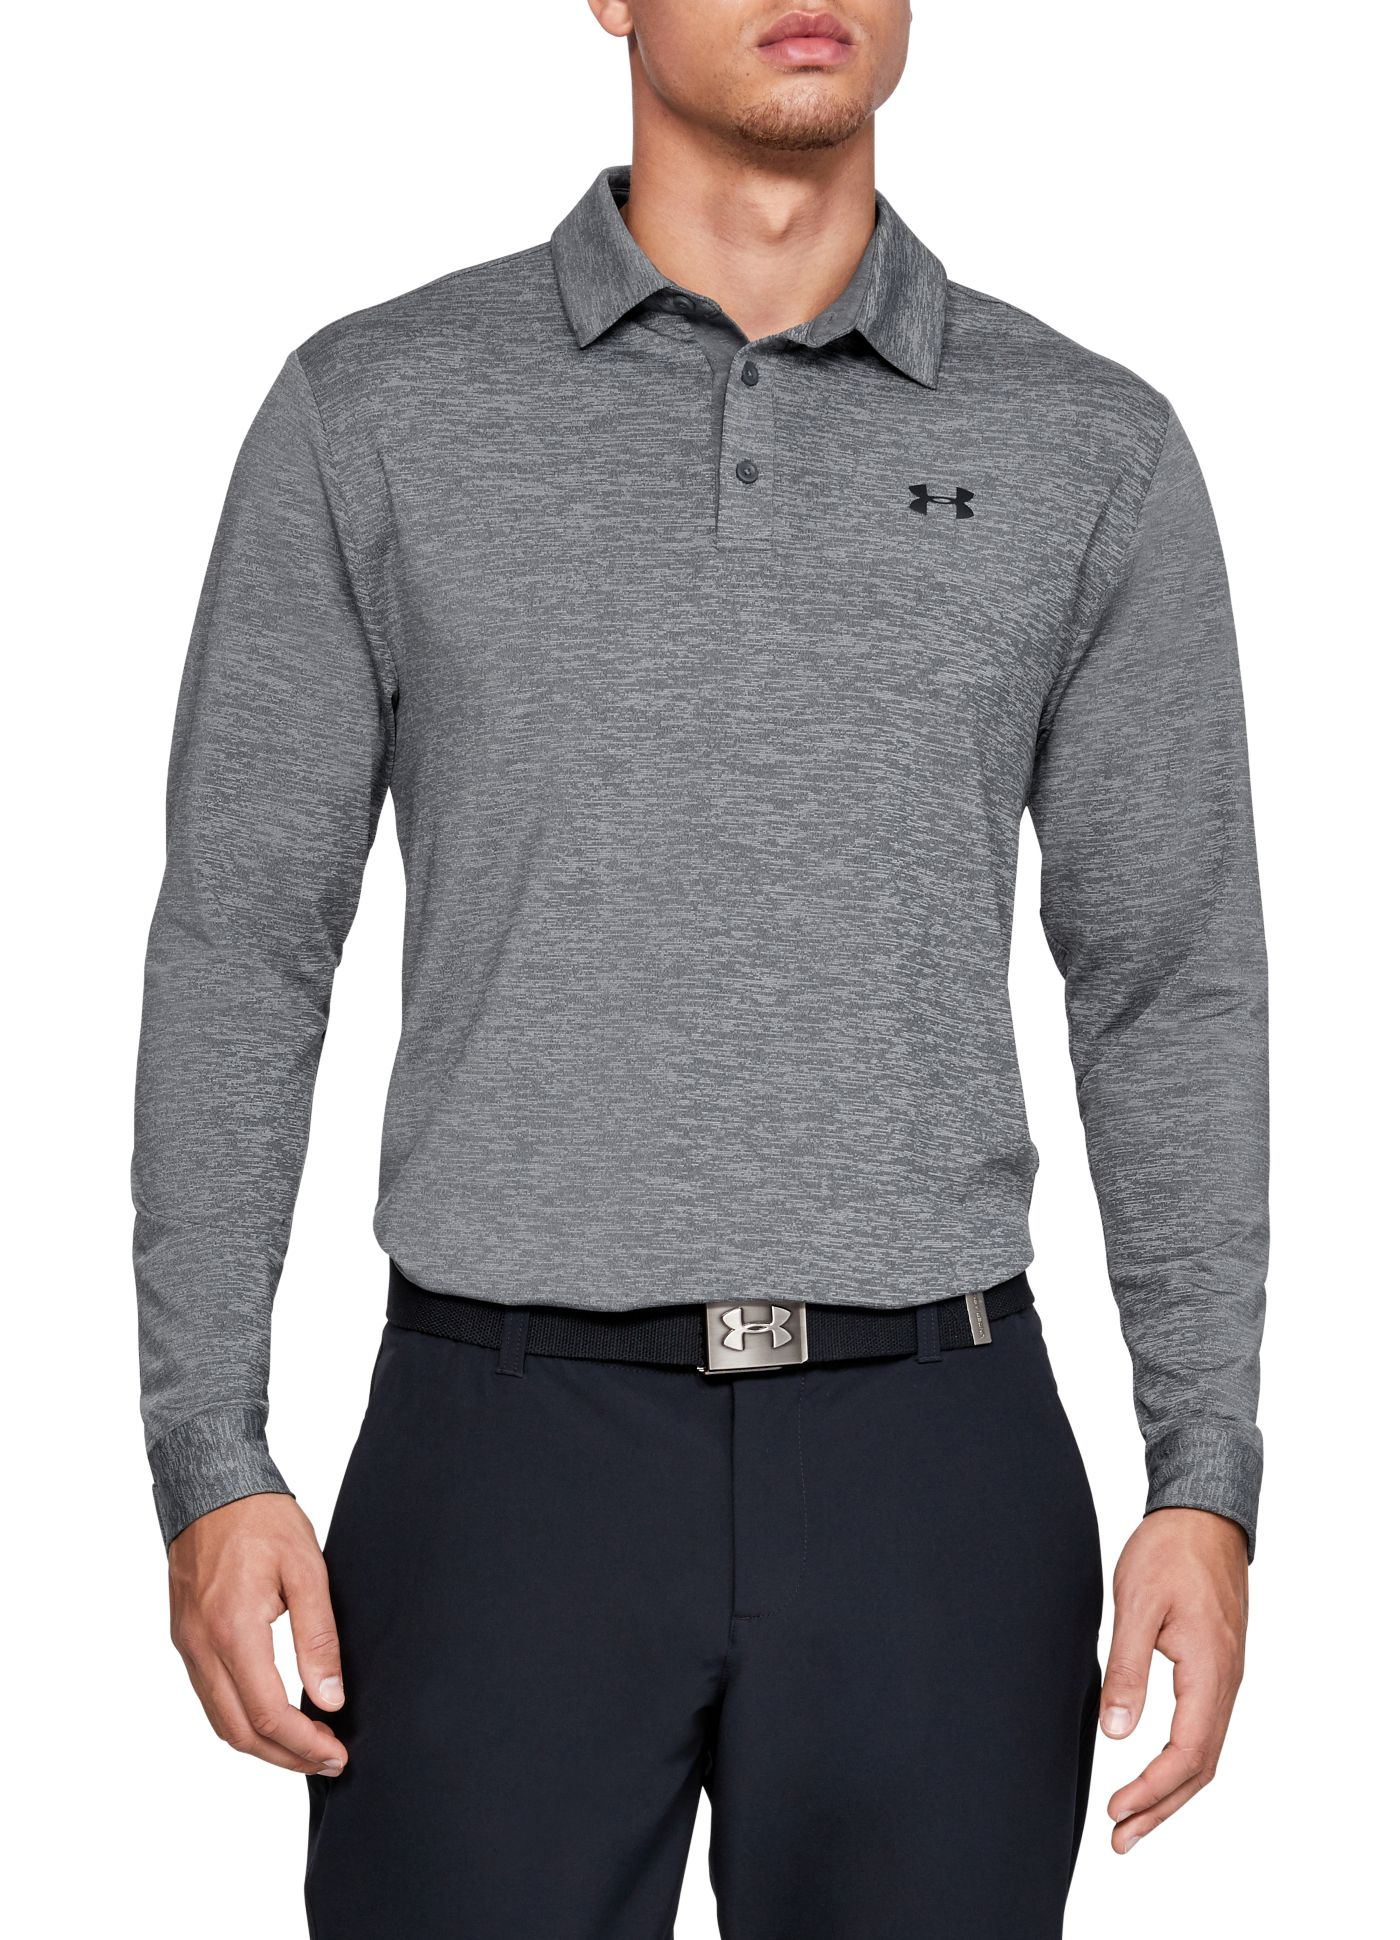 Under Armour Men's Playoff 2.0 Long Sleeve Golf Polo